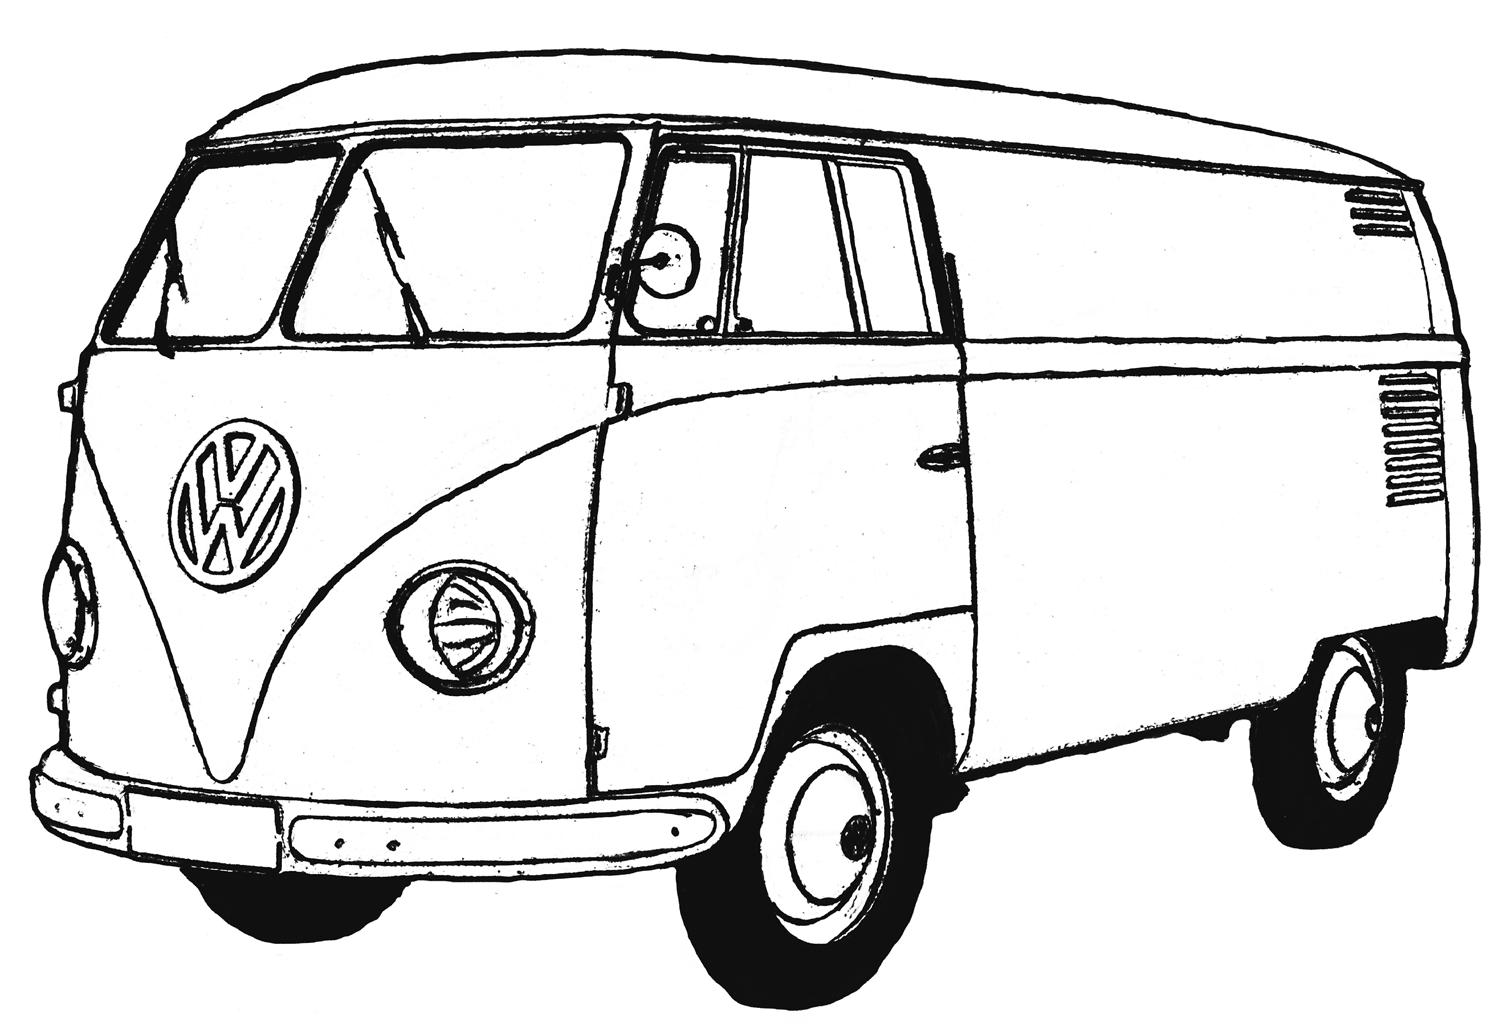 Coloring Pages Van : Free coloring pages of combi van